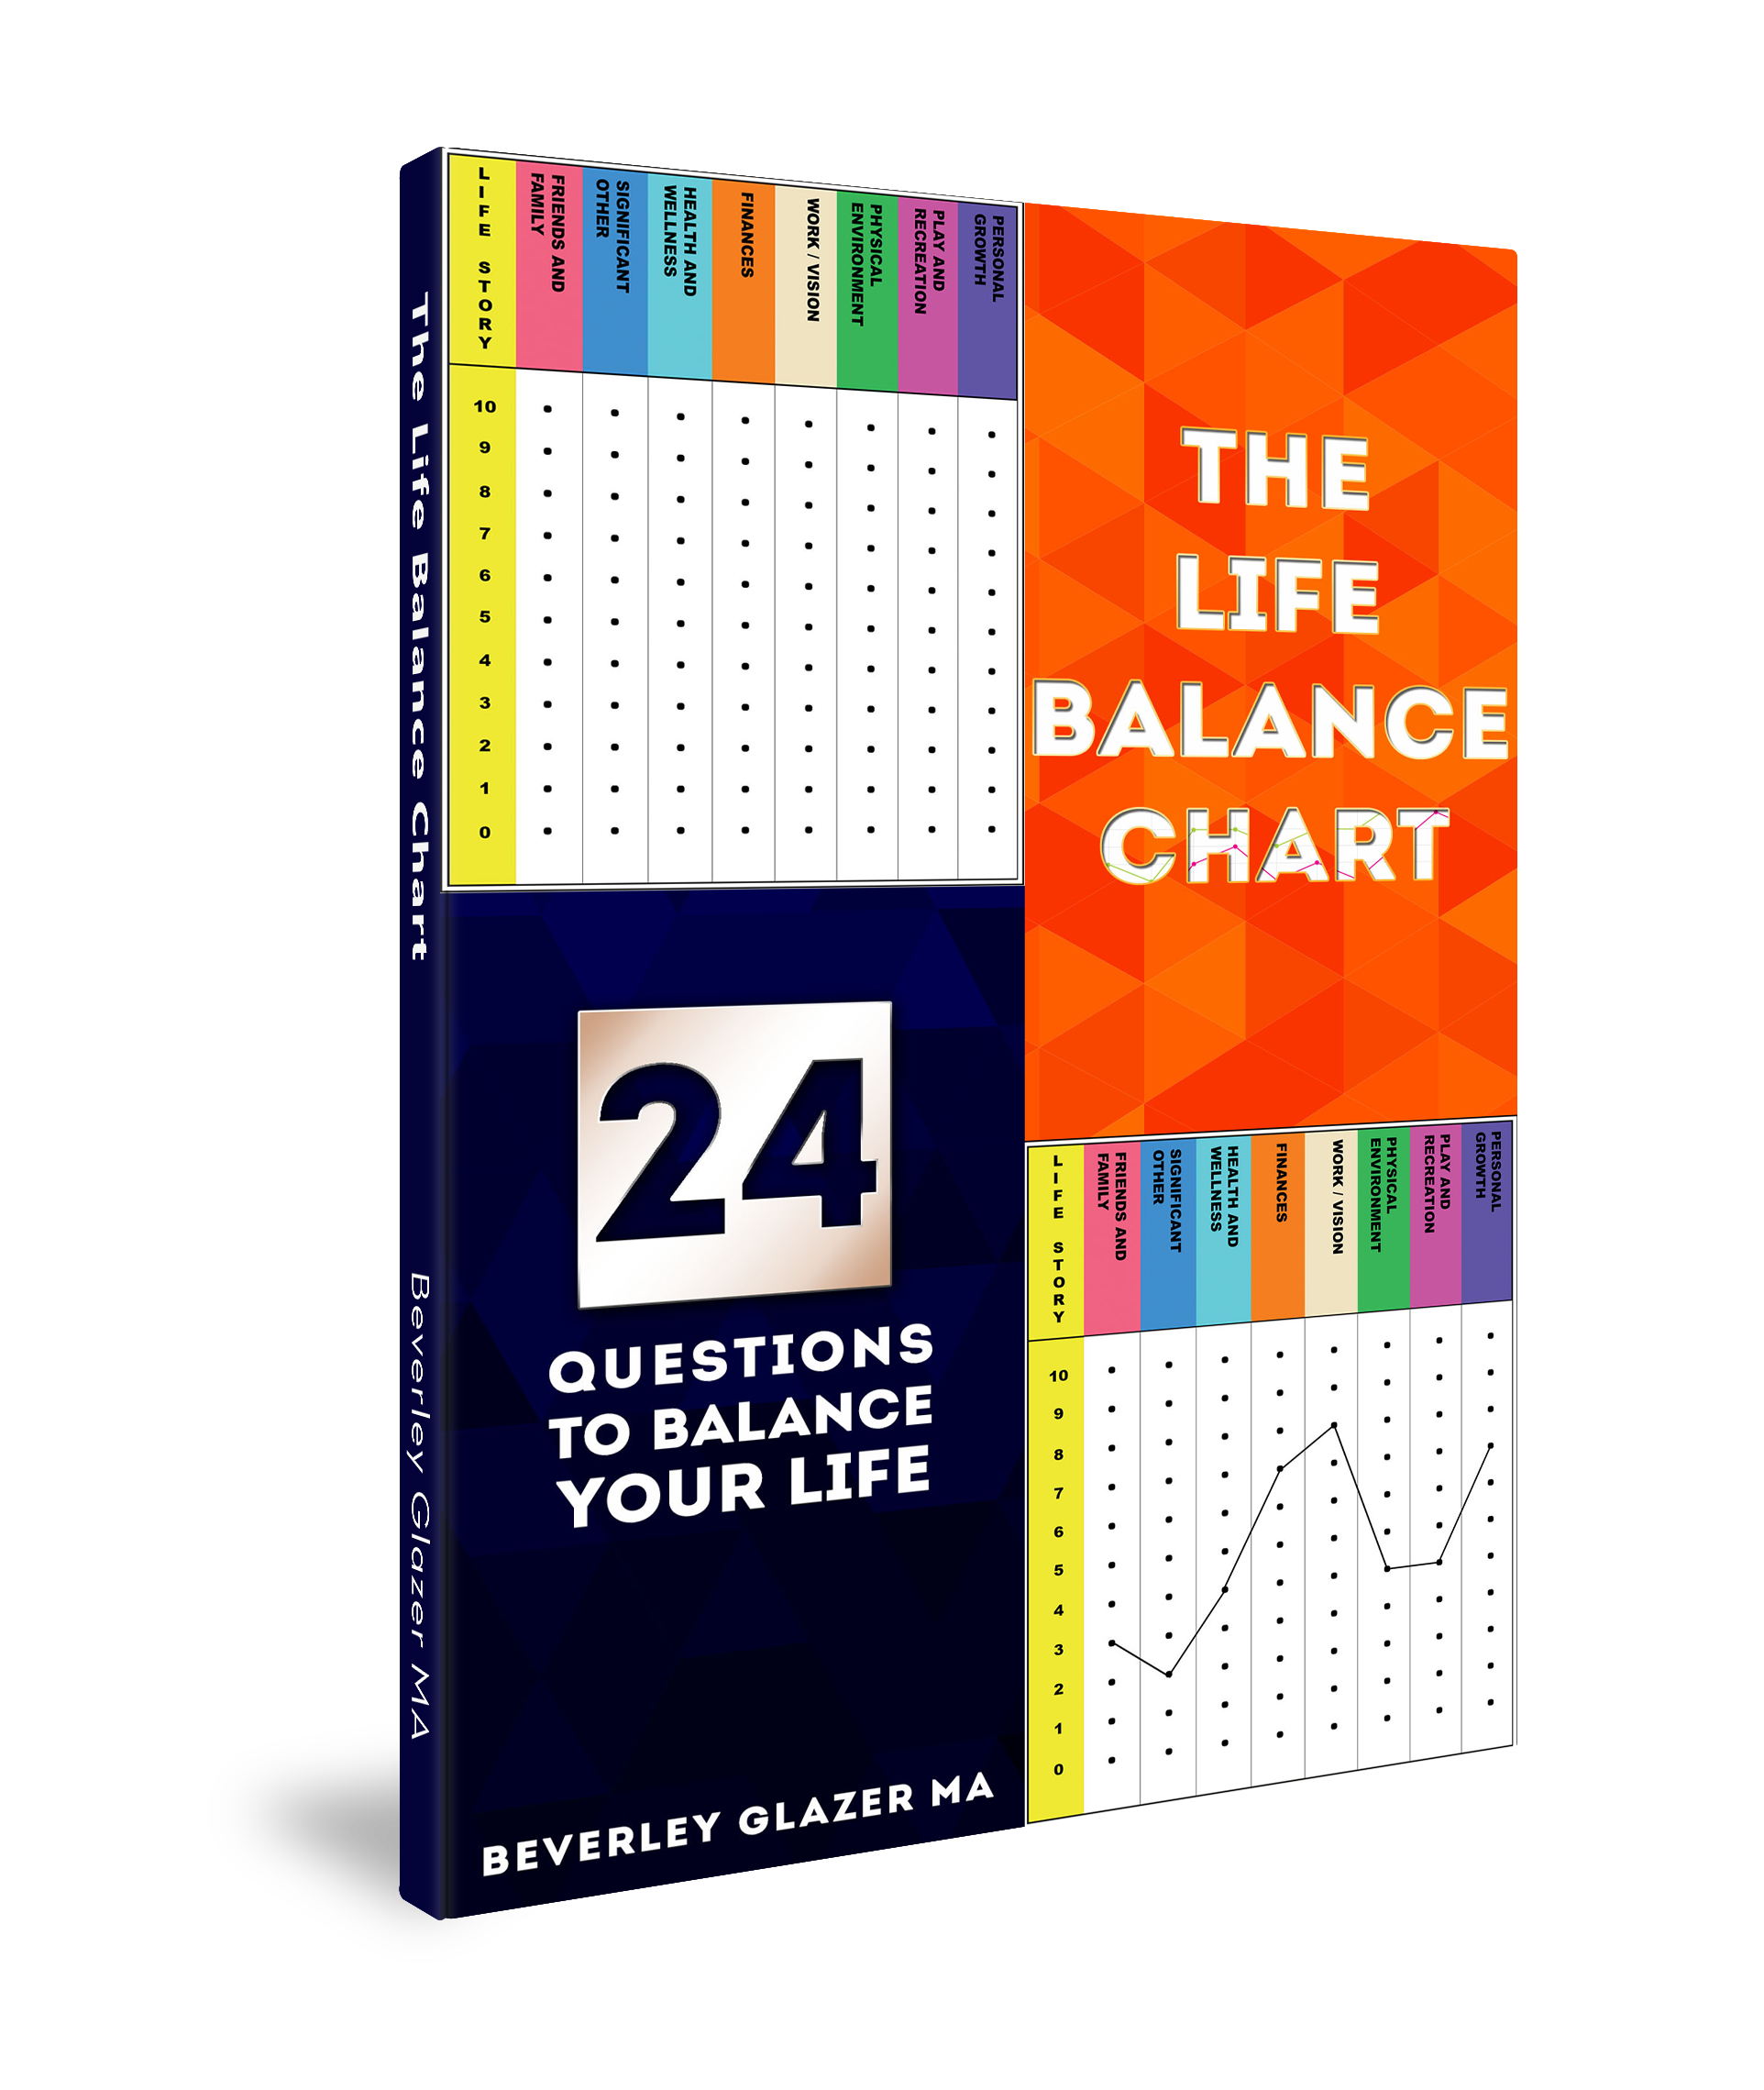 Life Balance Chart download free